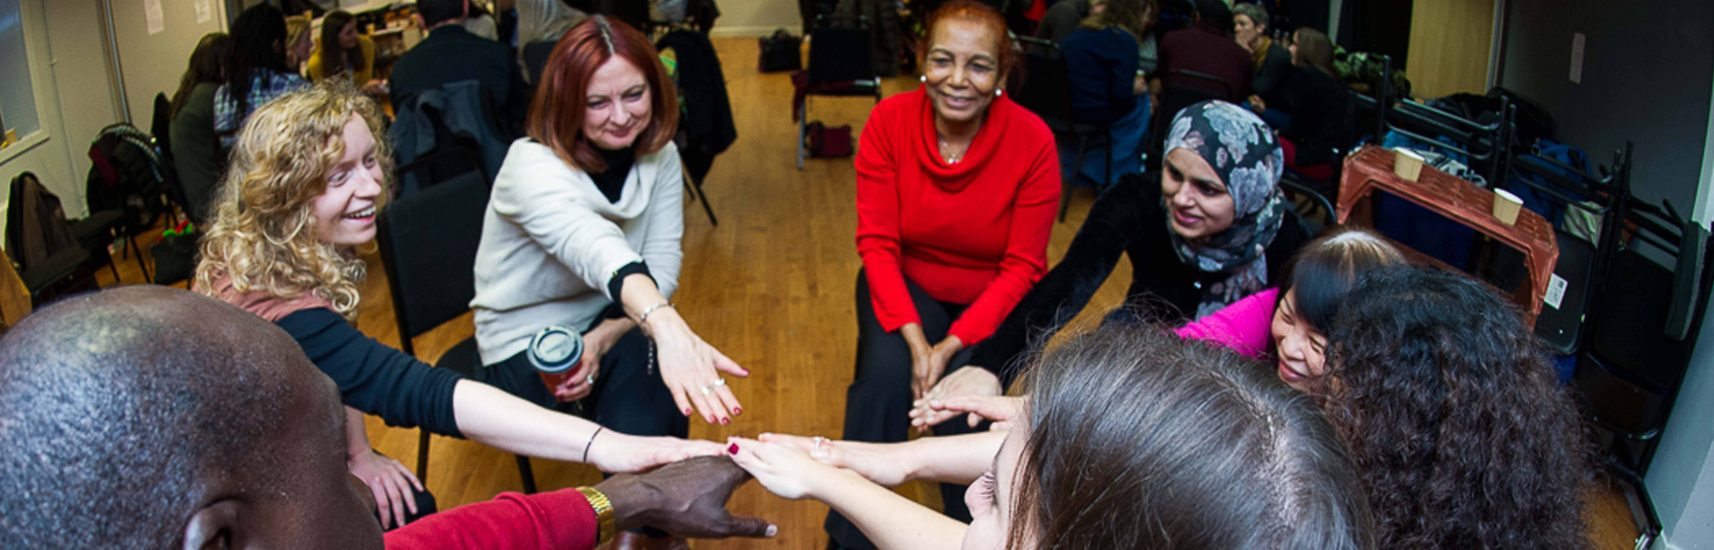 A group of colleagues reaching into a circle so that their hands touch in the middle duing a team building london activity